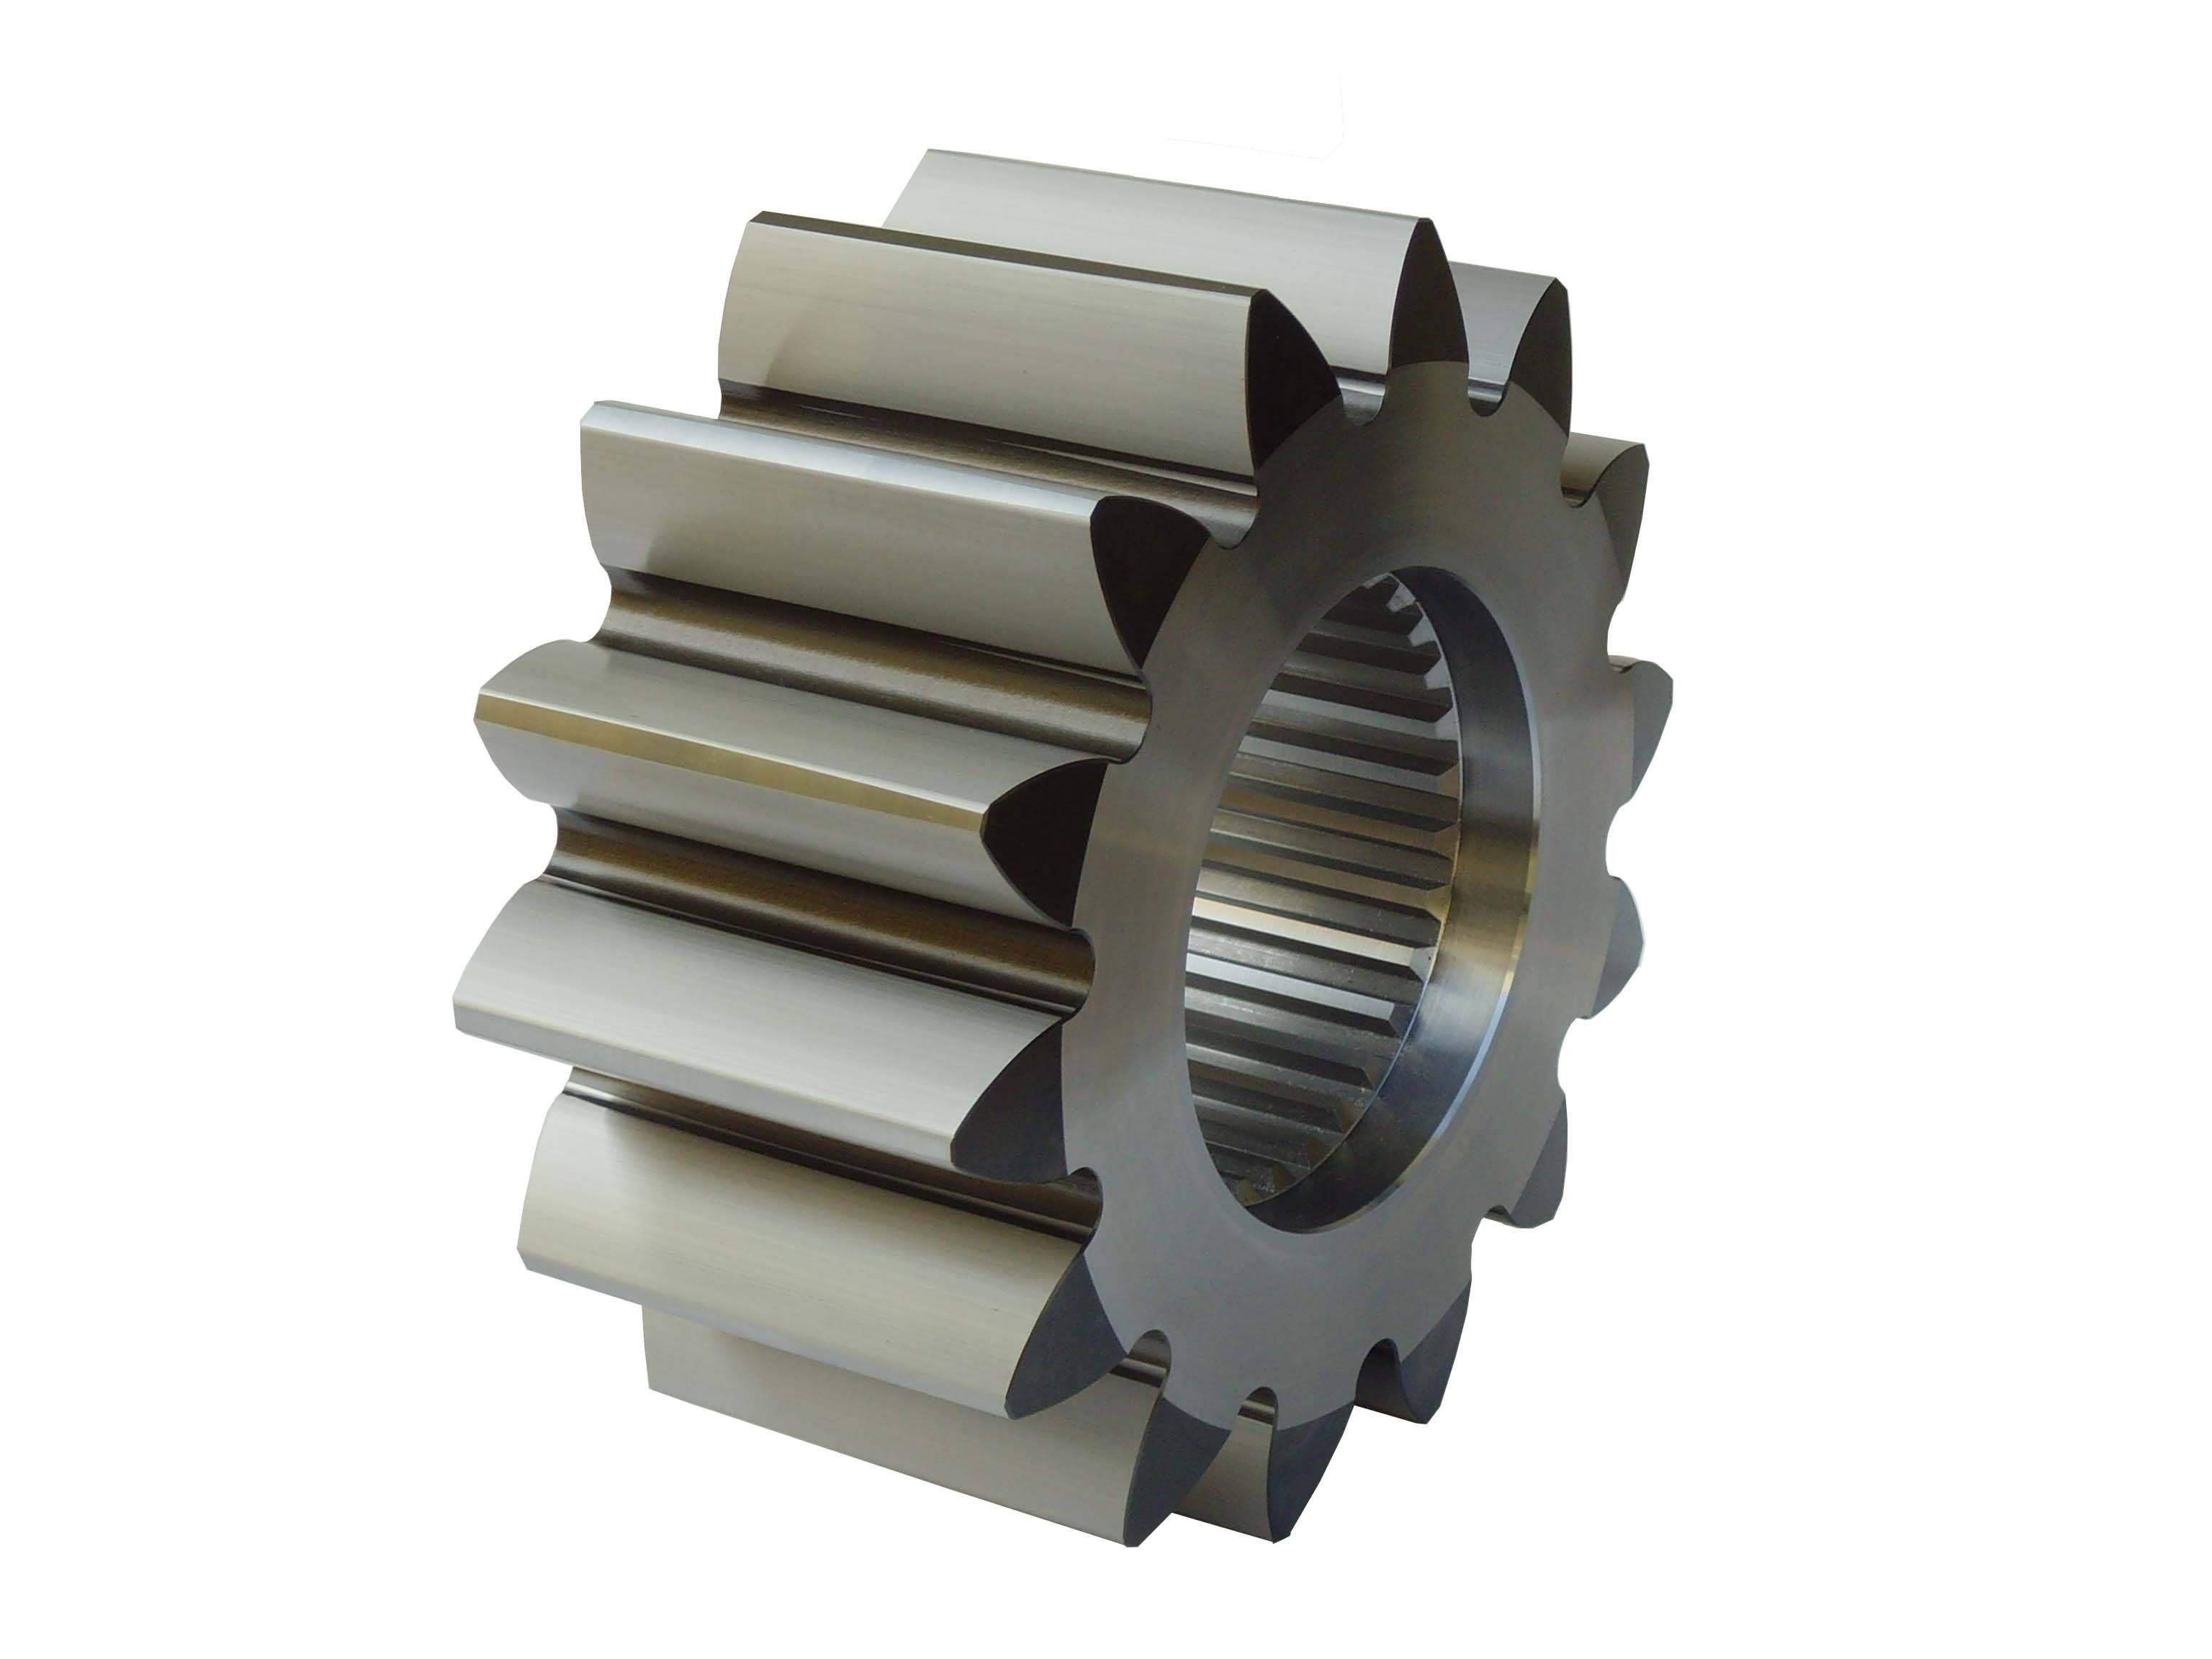 spur gear The computer-aided design (cad) files and all associated content posted to this website are created, uploaded, managed and owned by third party users.